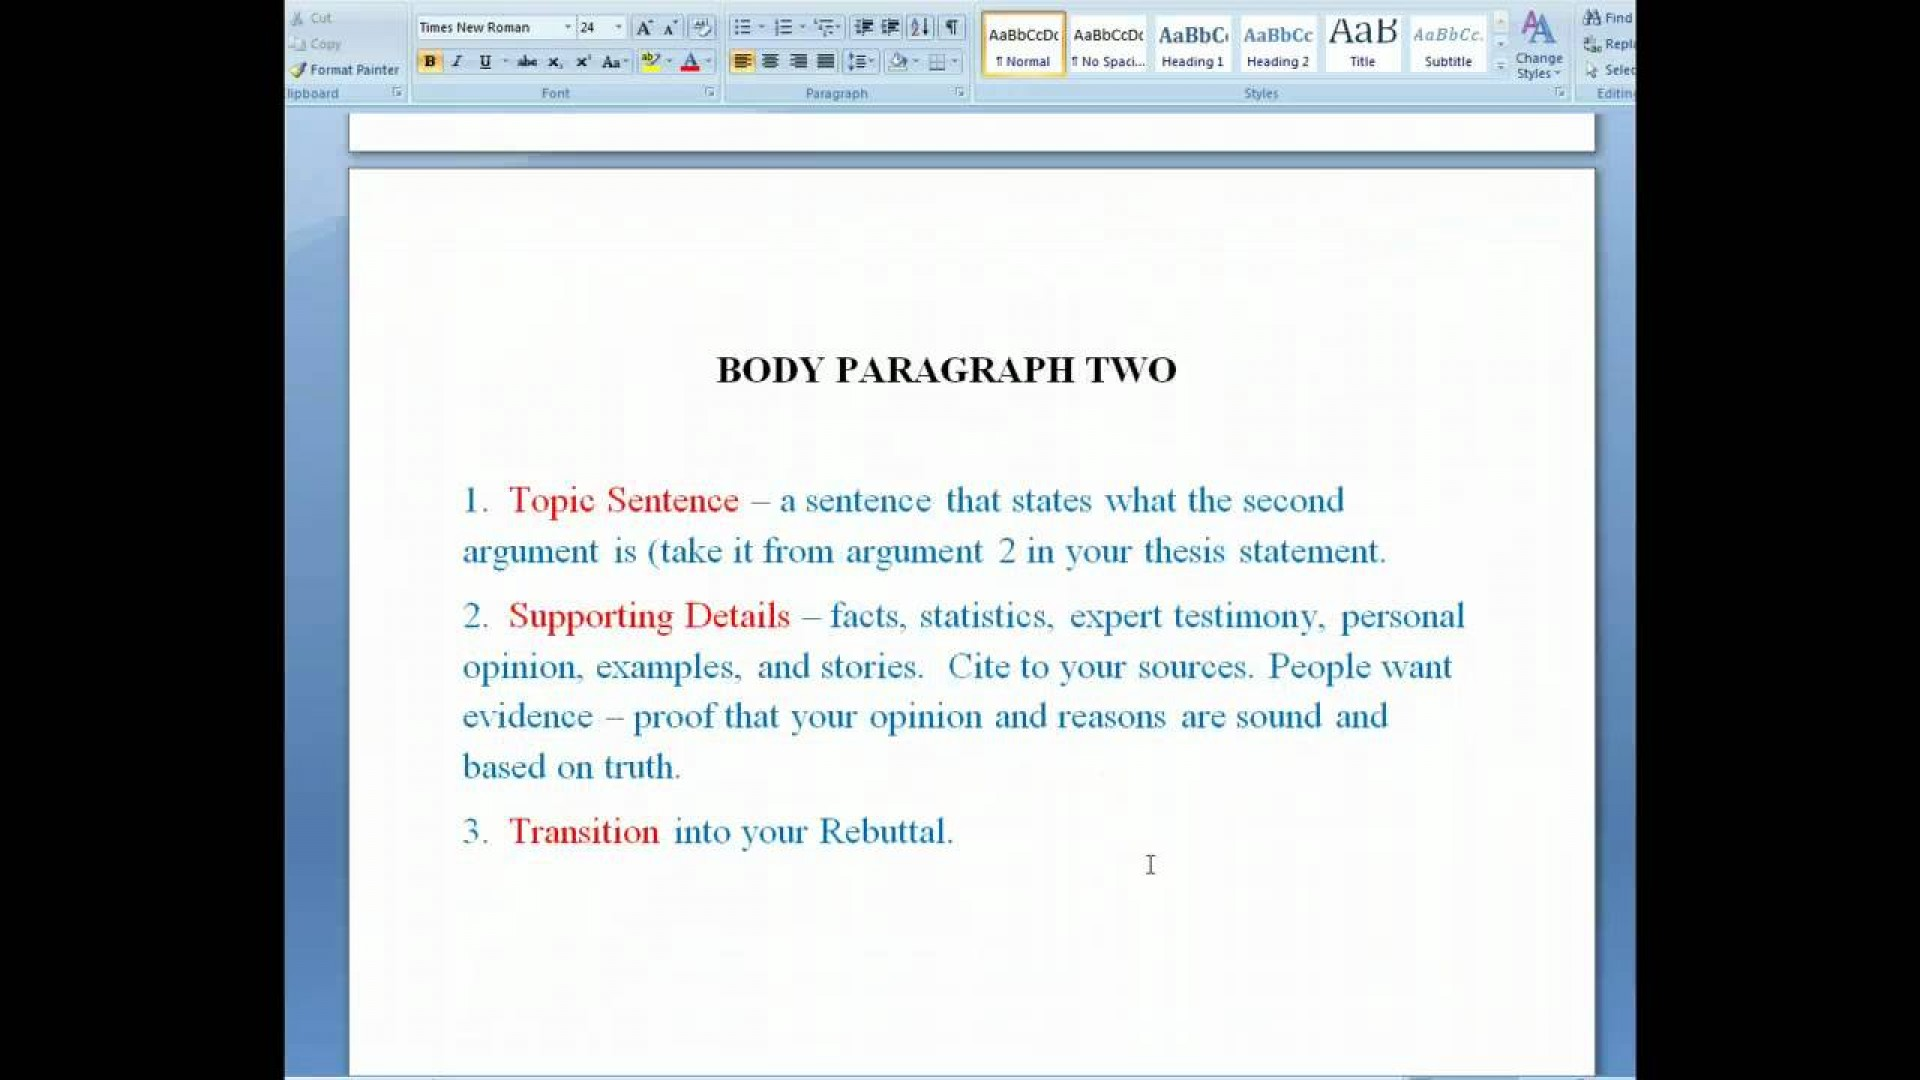 002 Parts Of An Argumentative Essay Example Surprising Quiz Middle School Ppt 1920